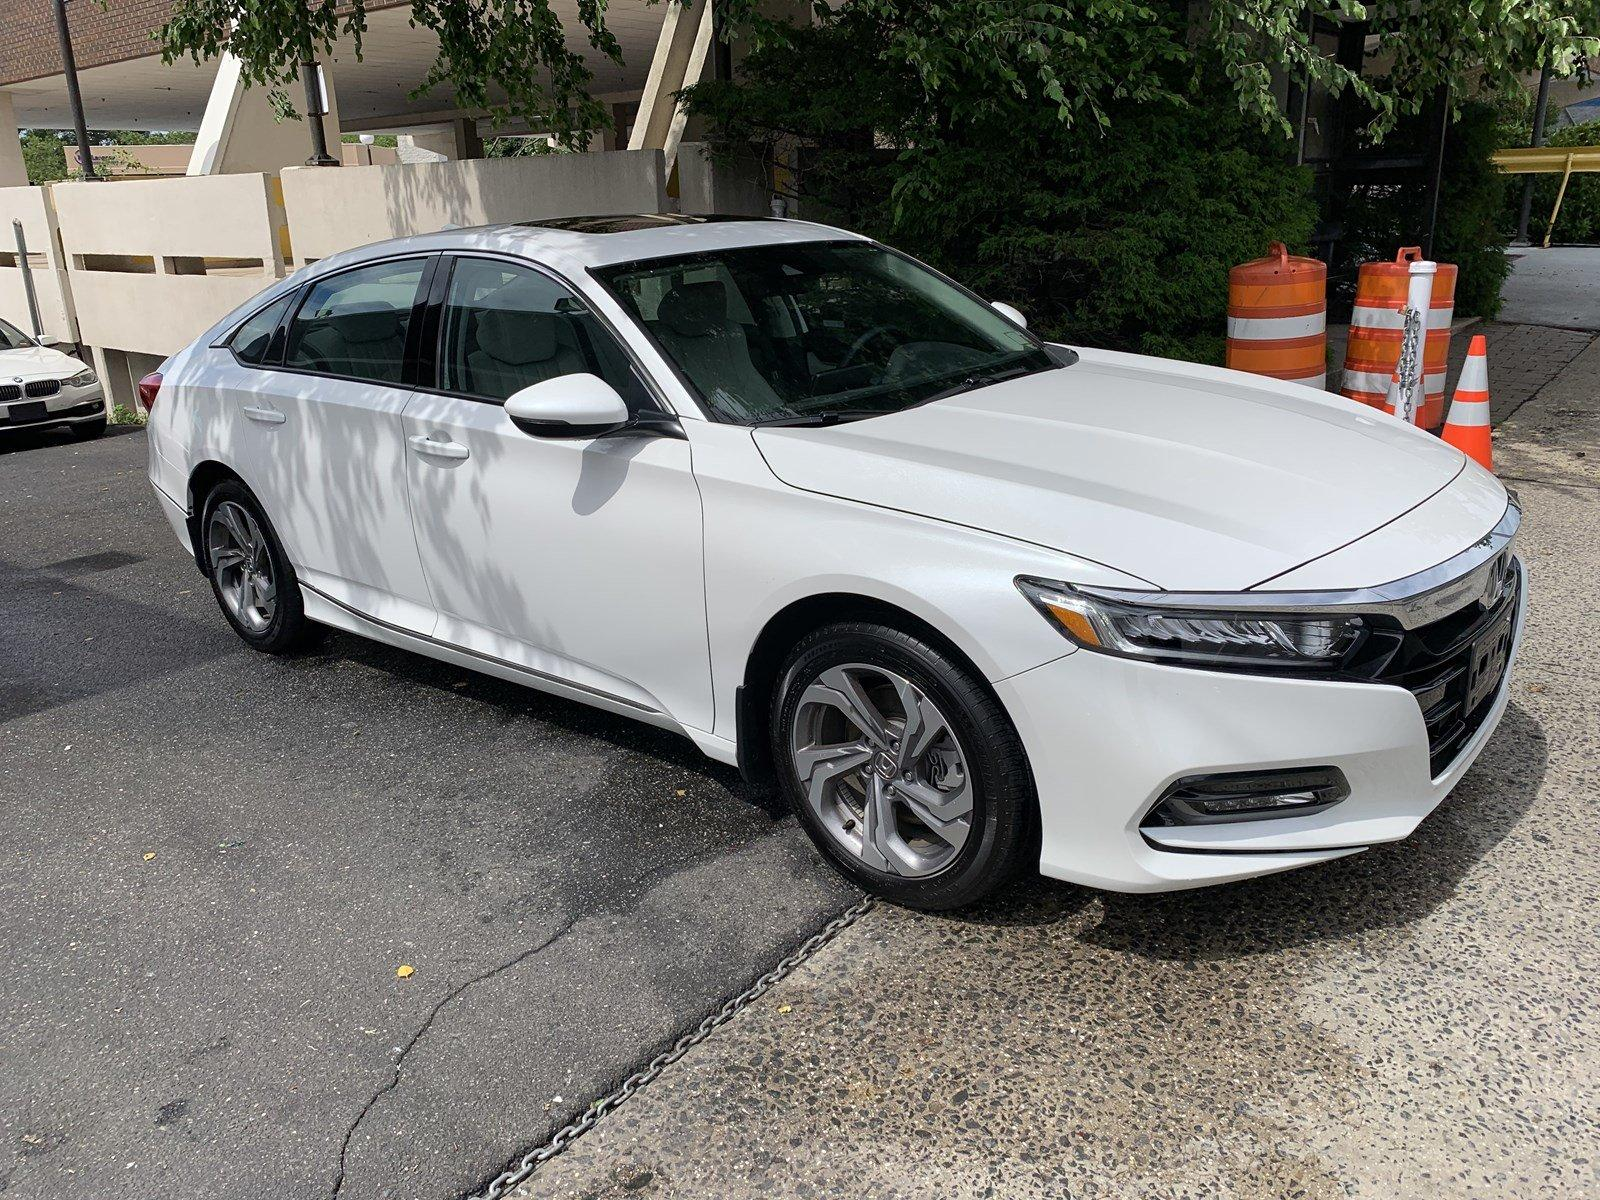 Used-2018-Honda-Accord-Sedan-EX-L-20T